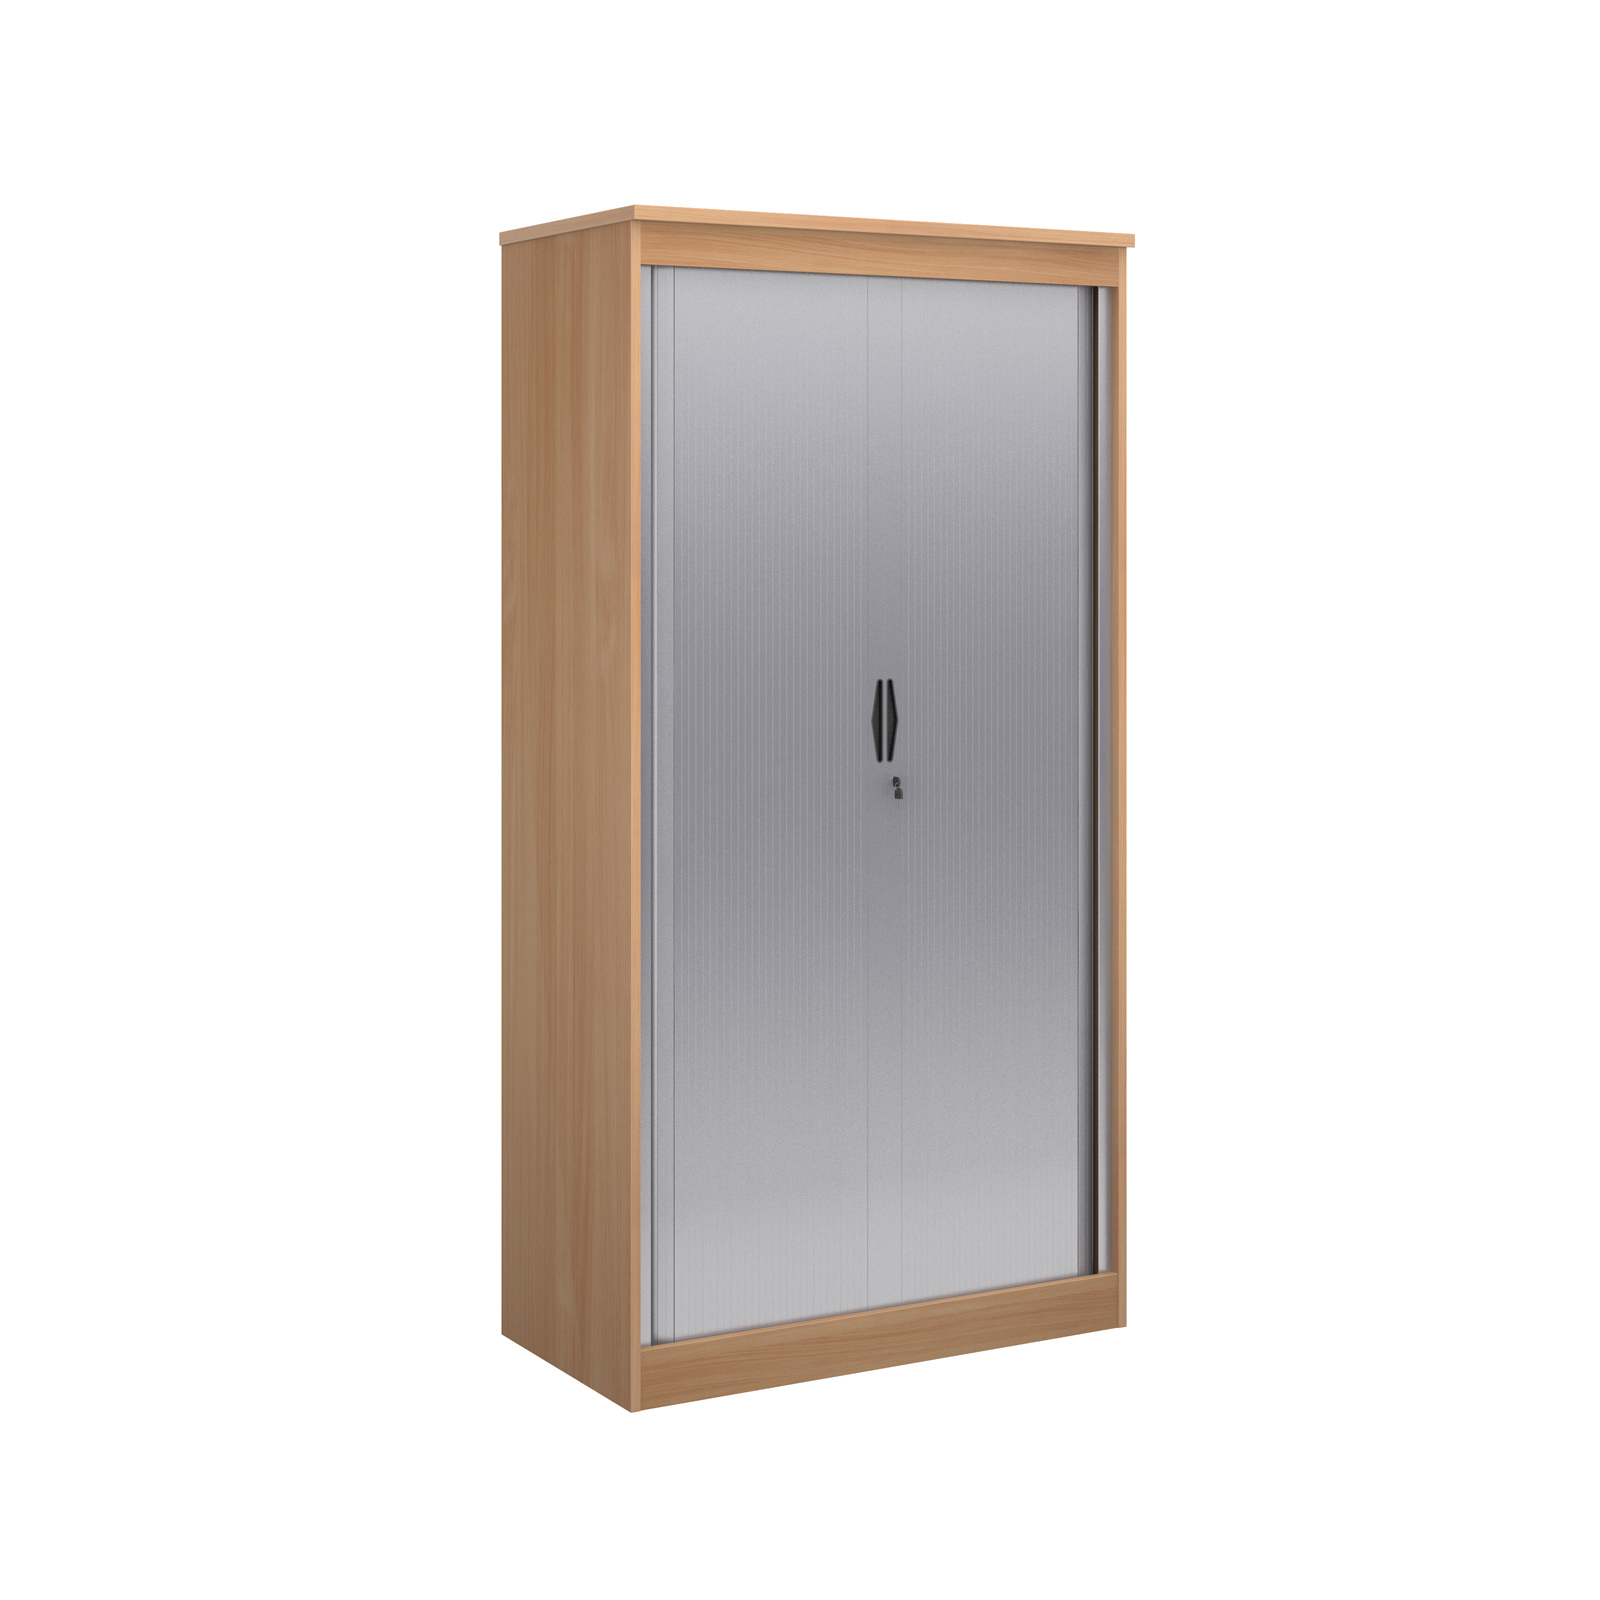 2000mm high system horizontal tambour door cupboard in beech